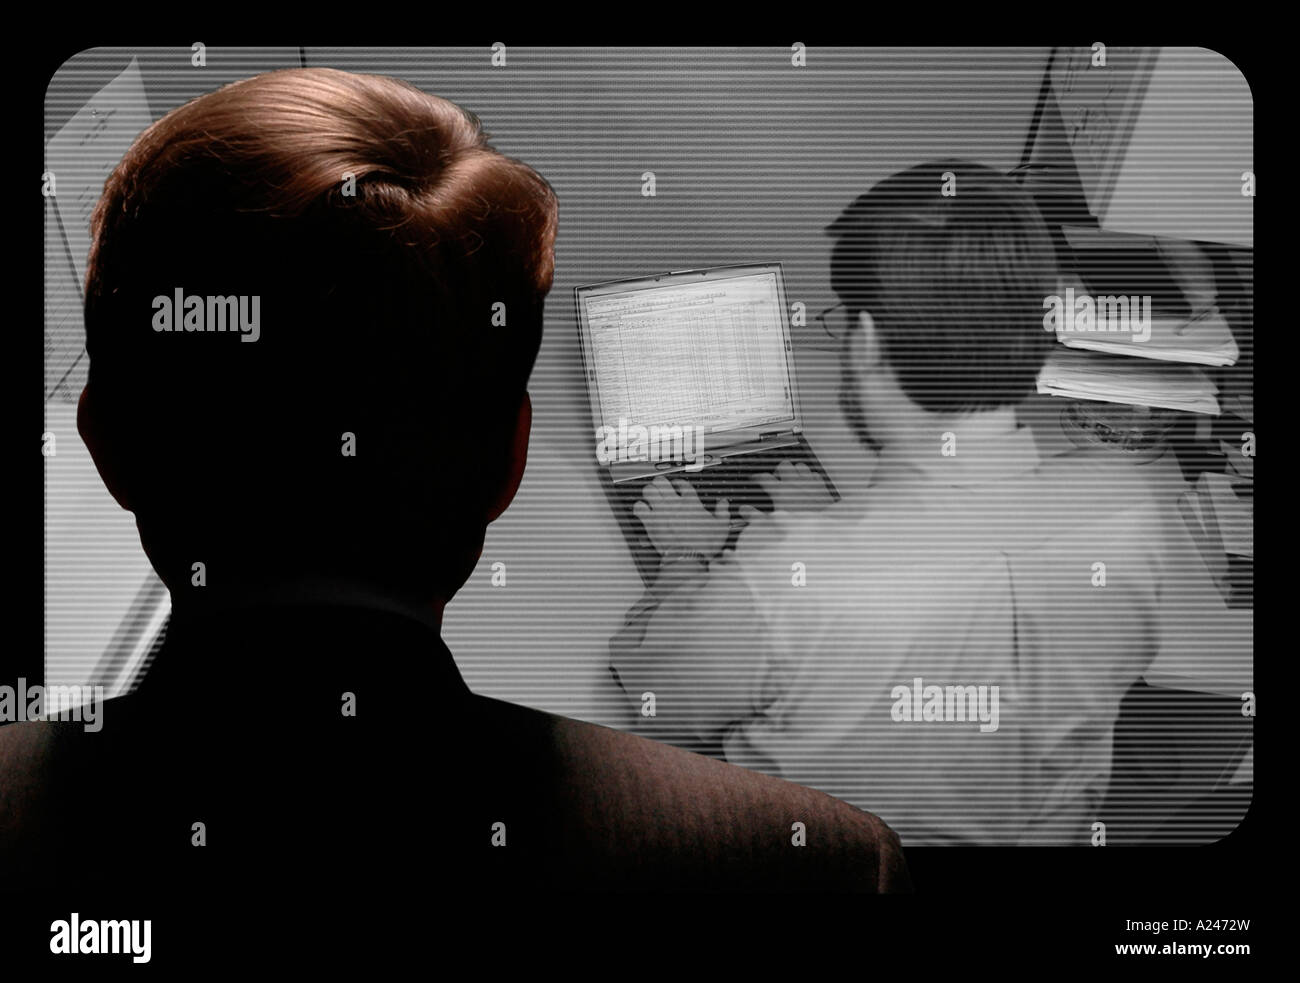 Man observing an employee work via a closed circuit video monitor - Stock Image